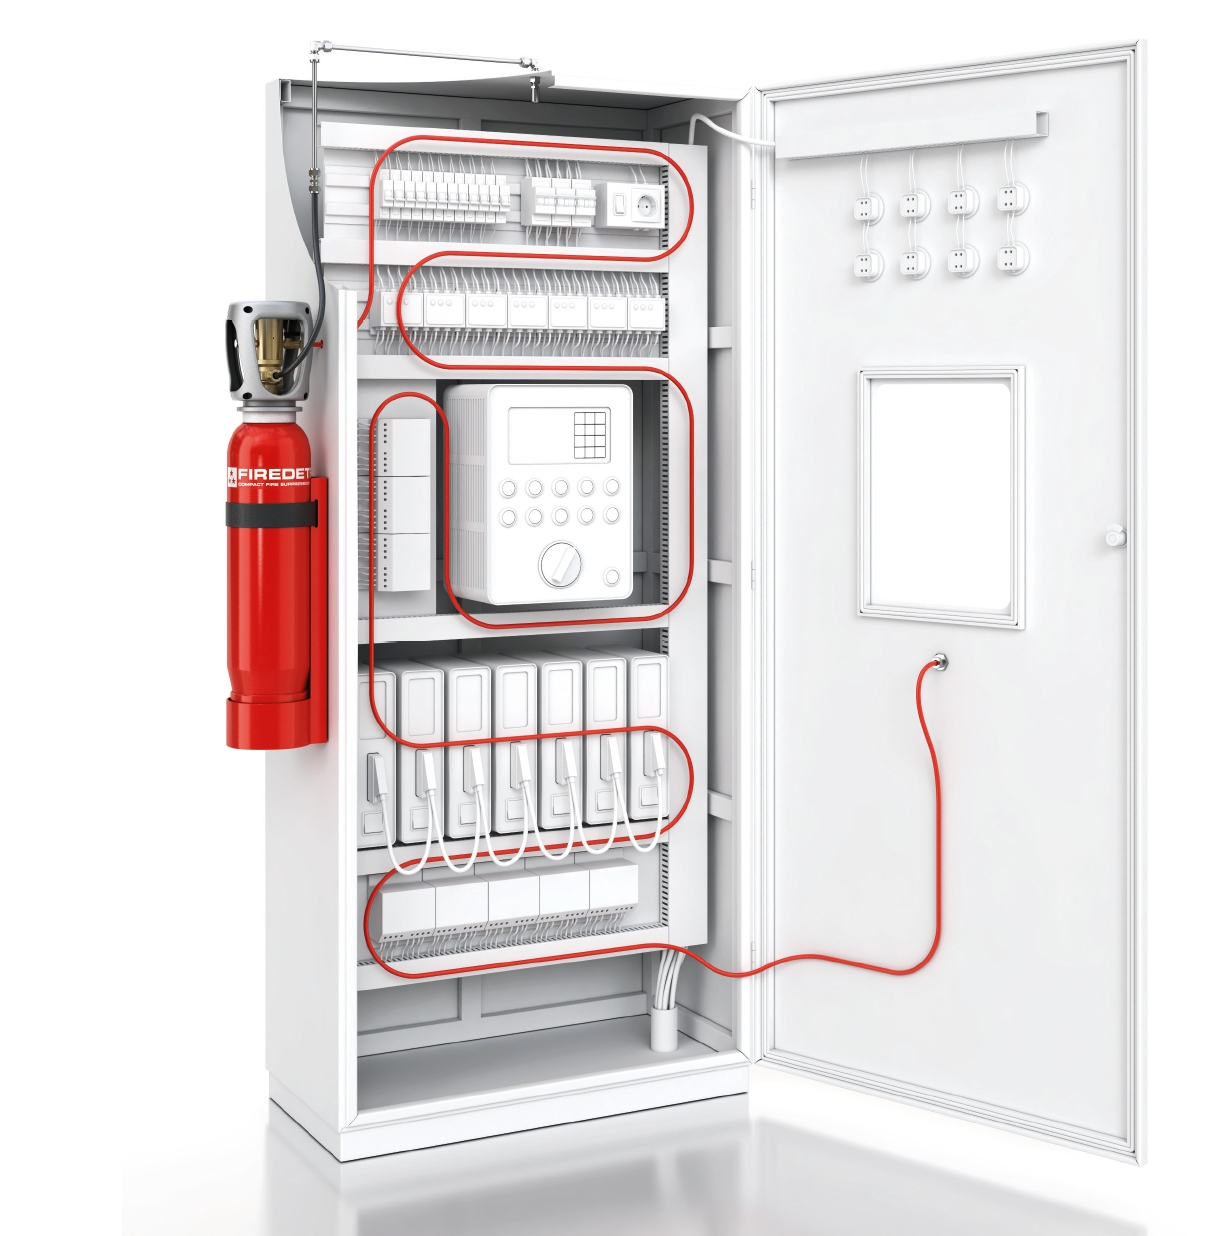 Firedetec Electrical Cabinet Fire Suppression And Protection System Home Wiring Systems Pre Engineered Indirect Co2 Extinguishing Agent With Dimes